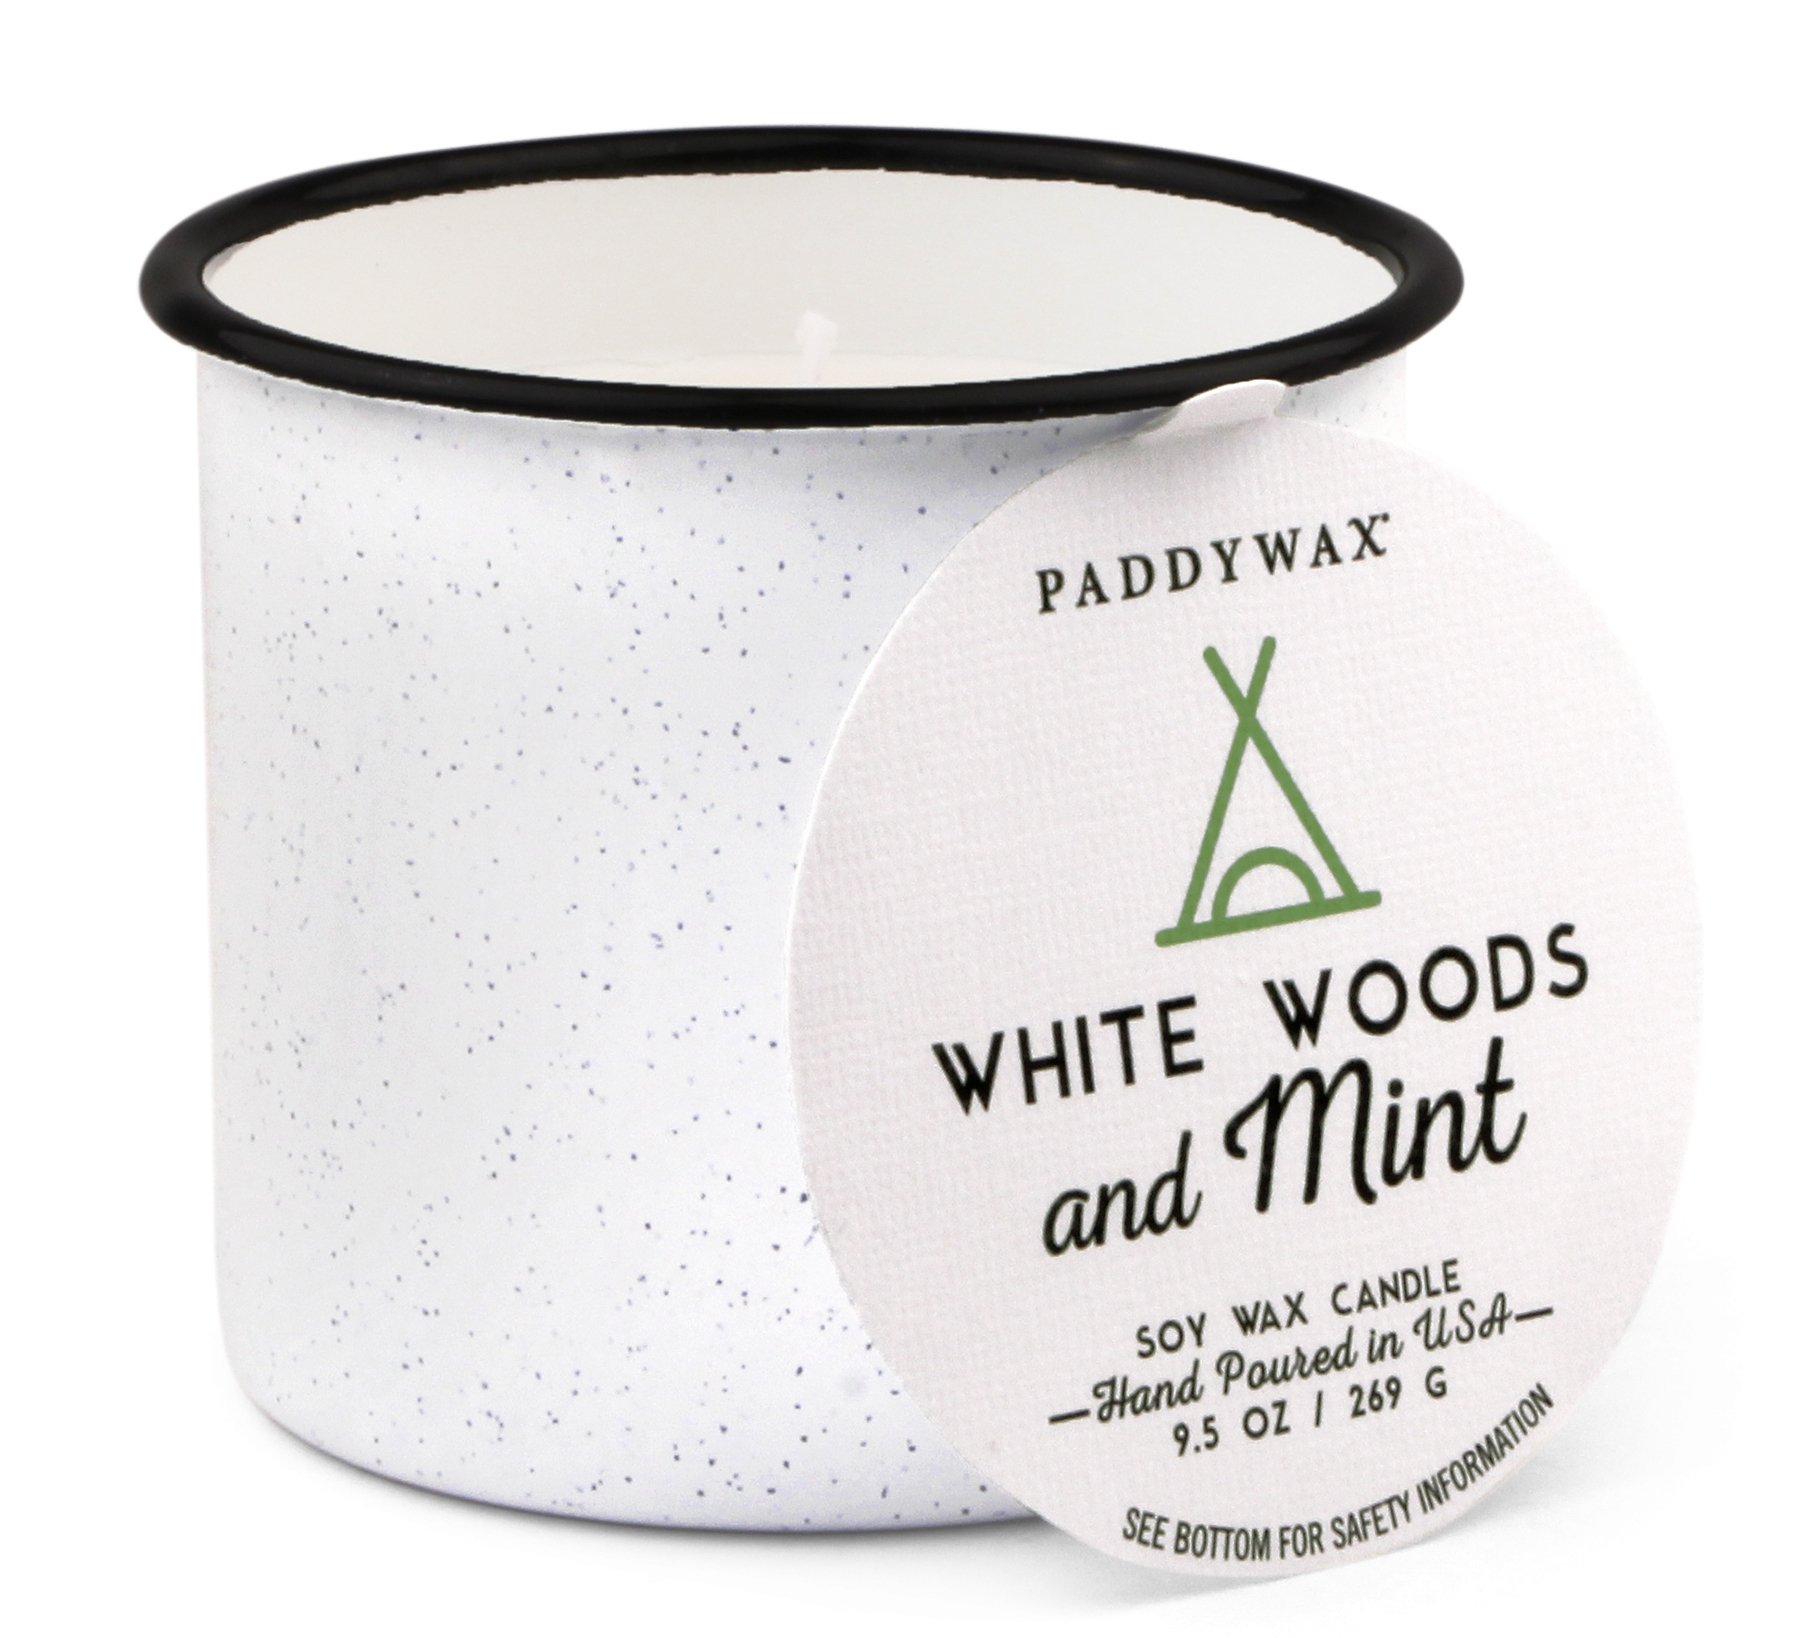 Paddywax Alpine Collection Scented Soy Wax Candle, 9.5-Ounce, Woods & Mint